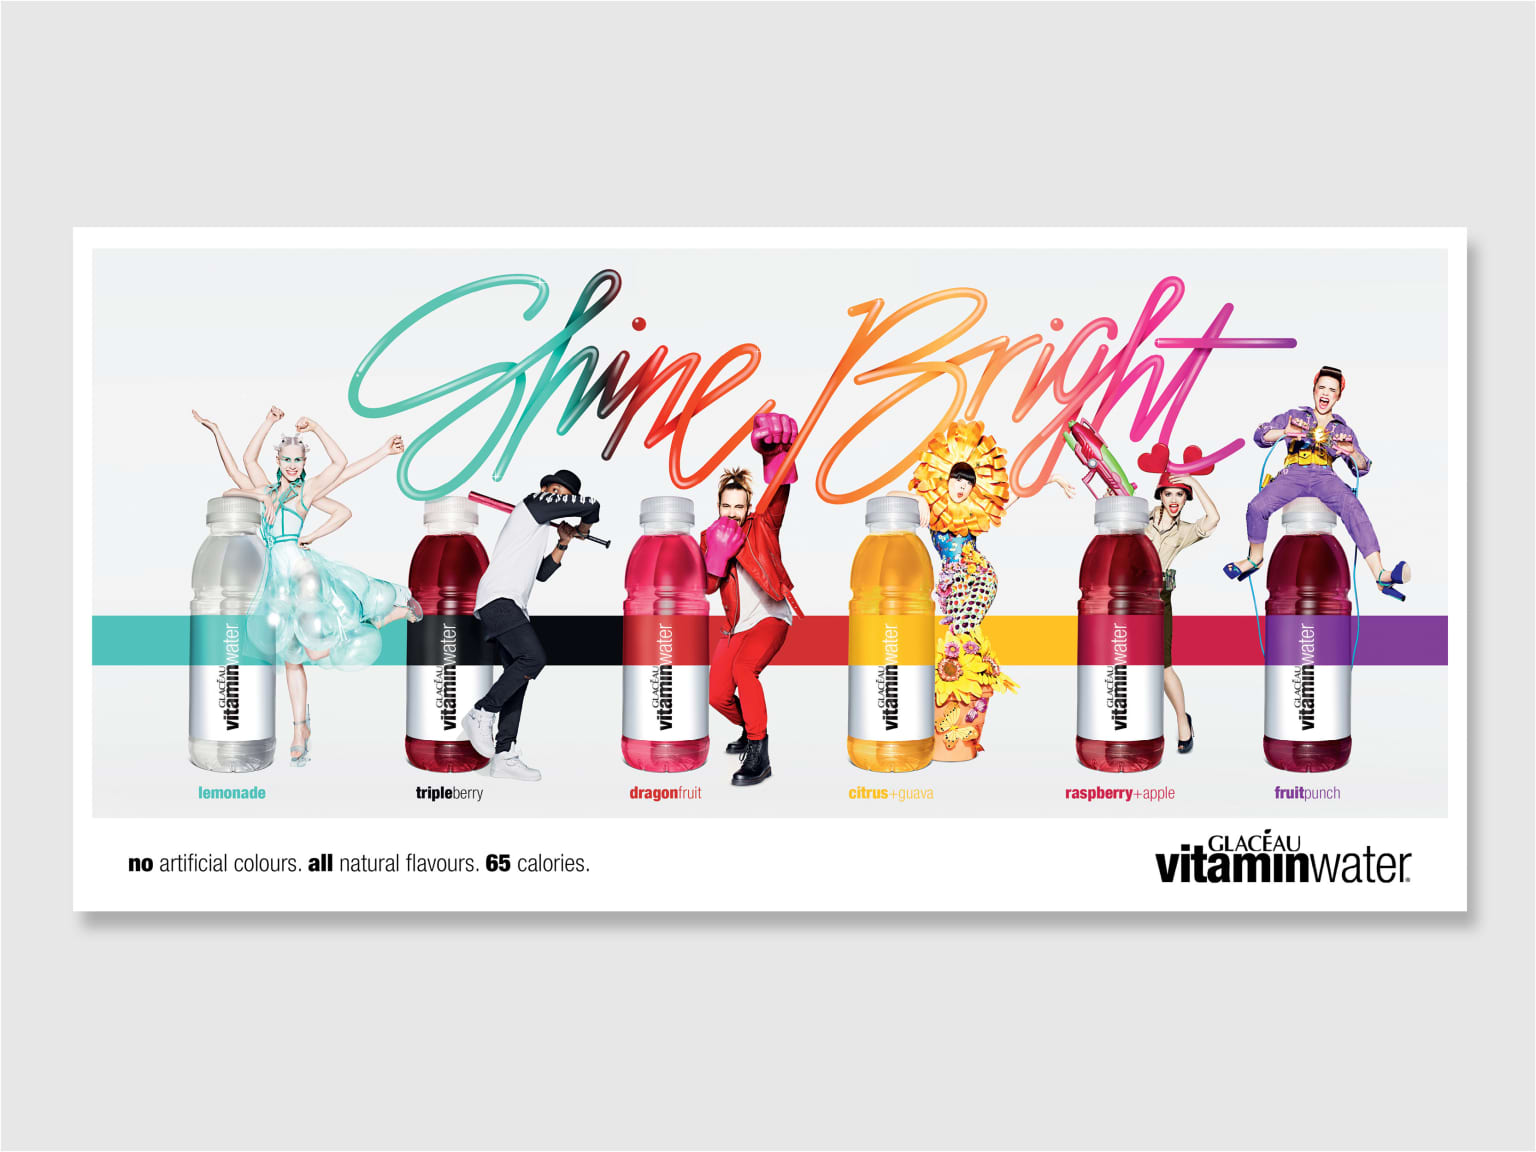 Glaceau vitaminwater #shinebright